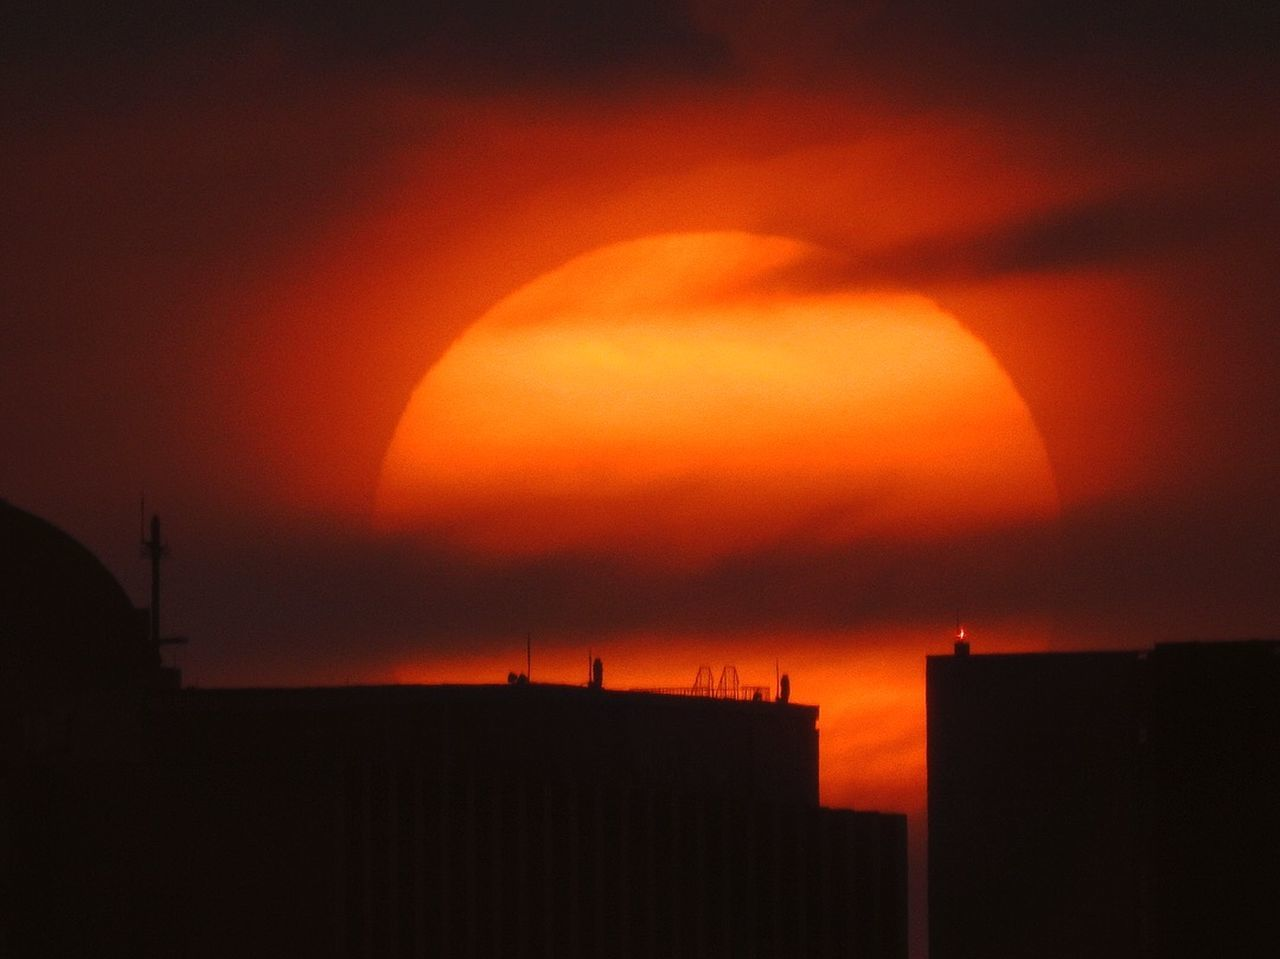 sky, sunset, orange color, architecture, silhouette, building exterior, built structure, sun, beauty in nature, nature, no people, cloud - sky, building, scenics - nature, dramatic sky, city, outdoors, idyllic, environment, technology, romantic sky